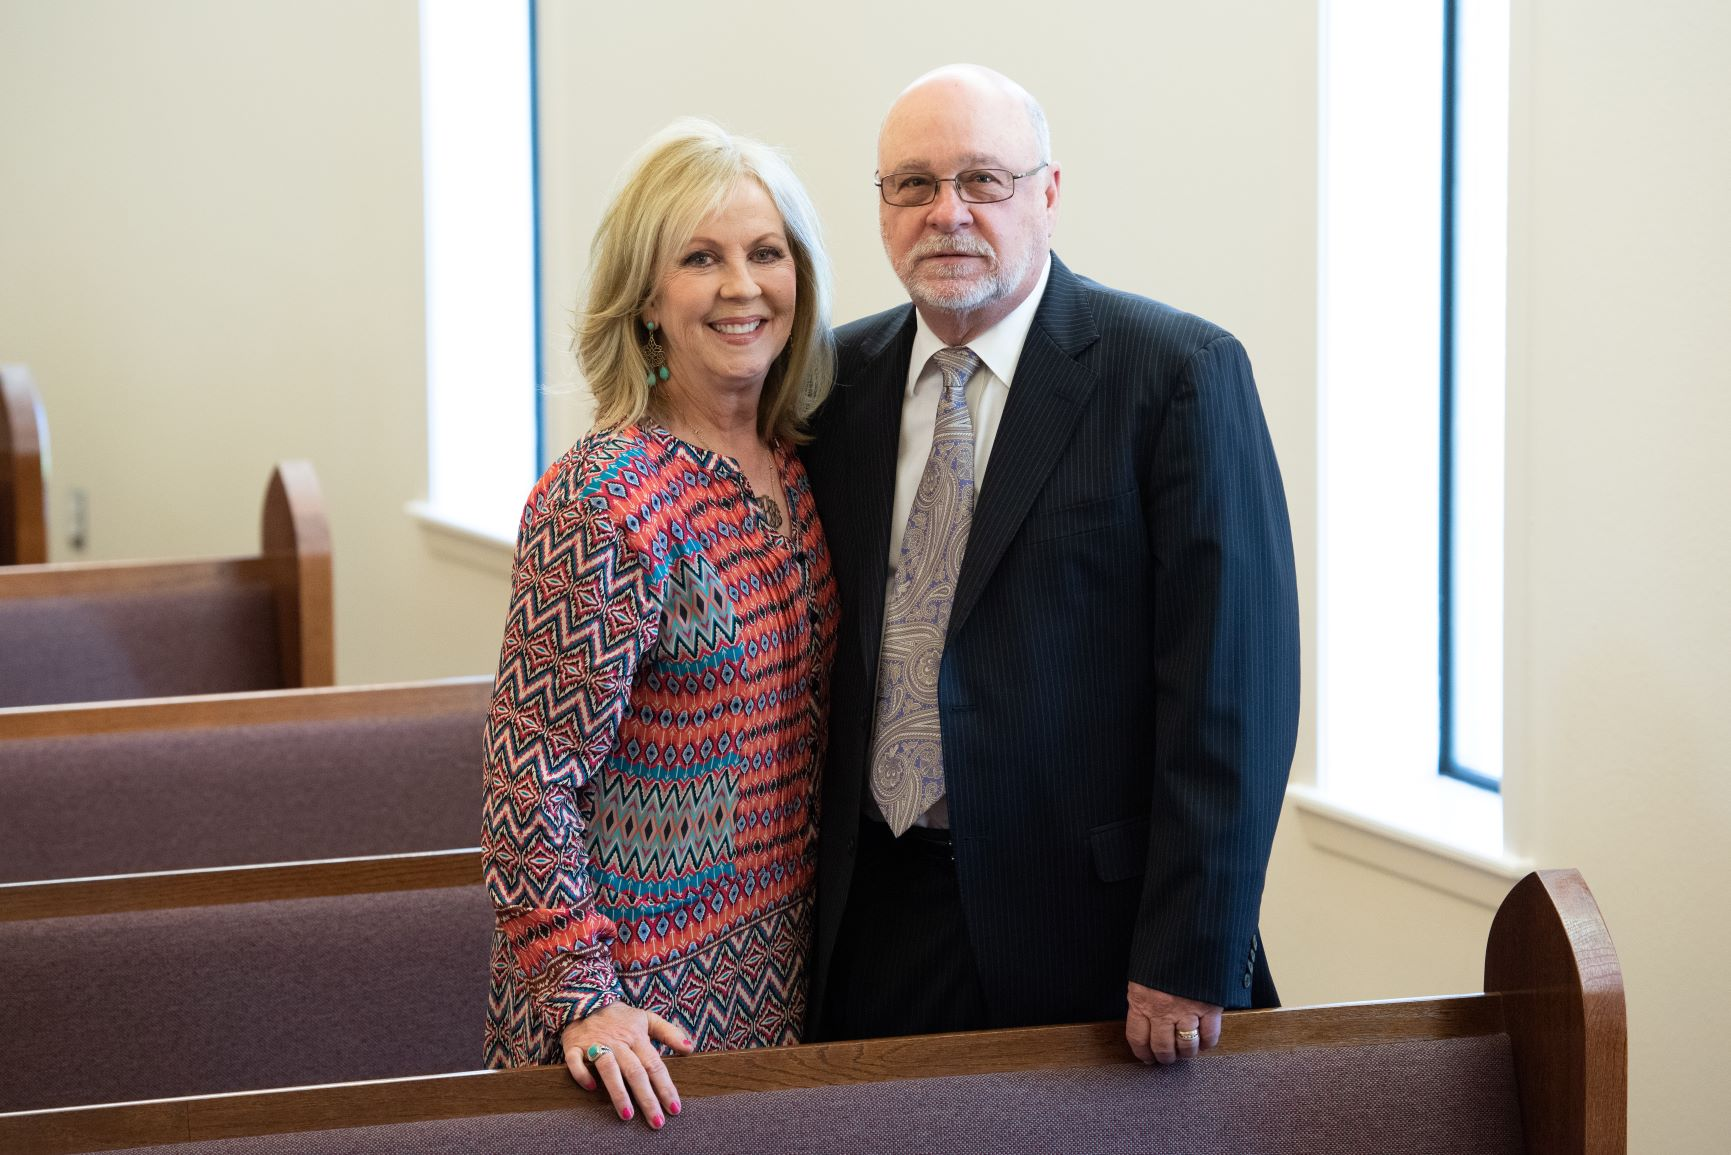 Eddie Arrington - Eddie and Sharon Arrington have worshipped at Southside since 1983. Eddie became a Deacon in 2001 and an Elder in 2007. Eddie and Sharon have lived in Jacksonville their entire lives. They married in 1977 and have two adult children, Kyle and Katie. Eddie is owner of Arrington Lumber and Pallet Co.